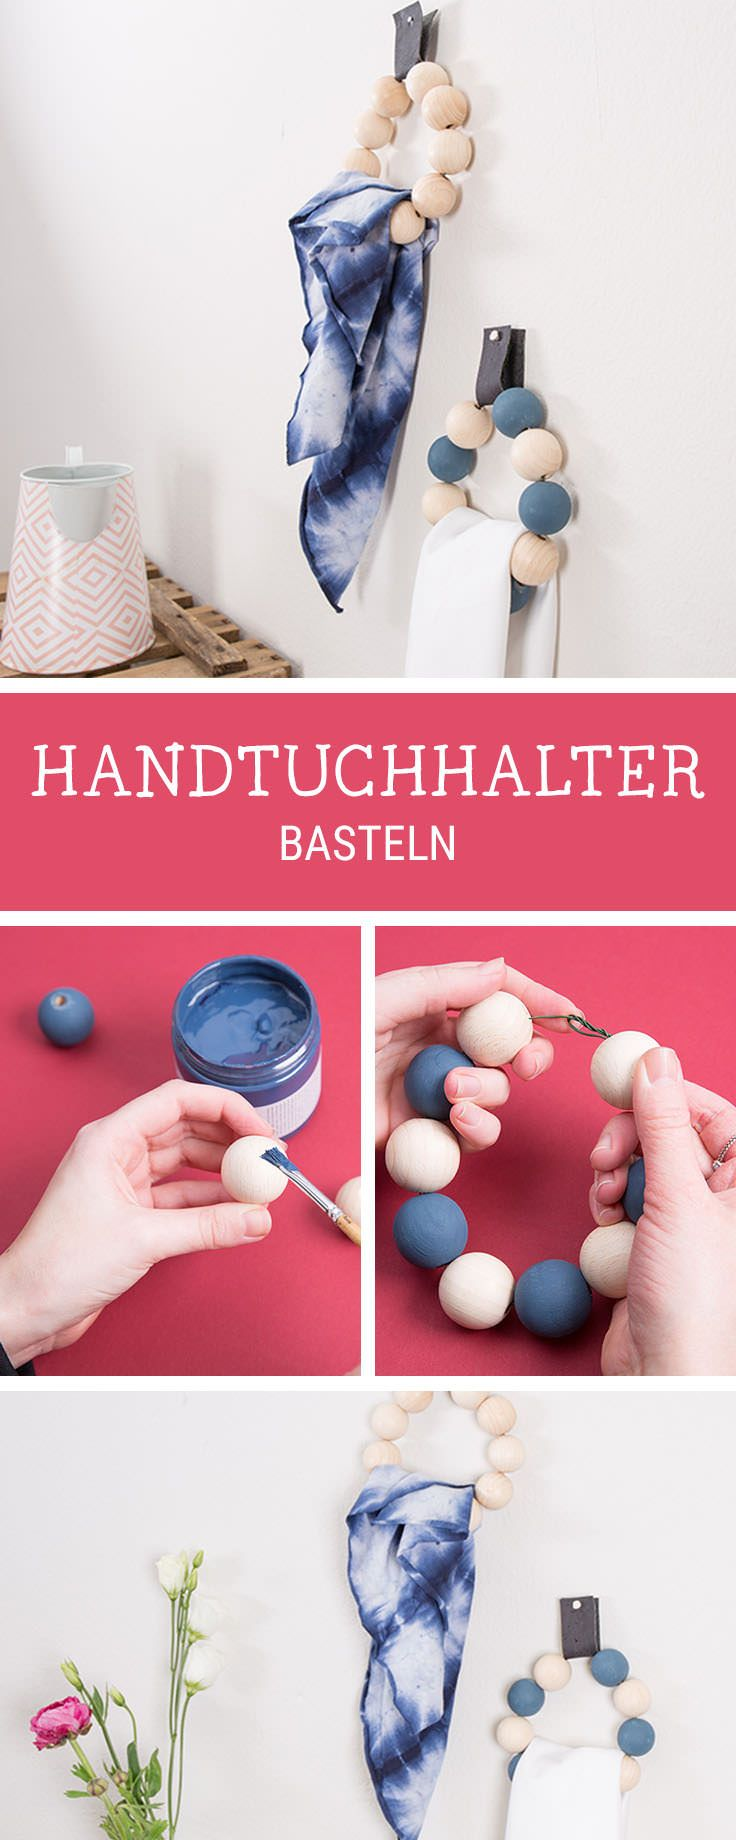 Handtuchhalter fürs Bad selbermachen: Halterung aus Holzperlen basteln / crafting inspiration for a towel rail made of wooden pearls, easy diy via DaWanda.com